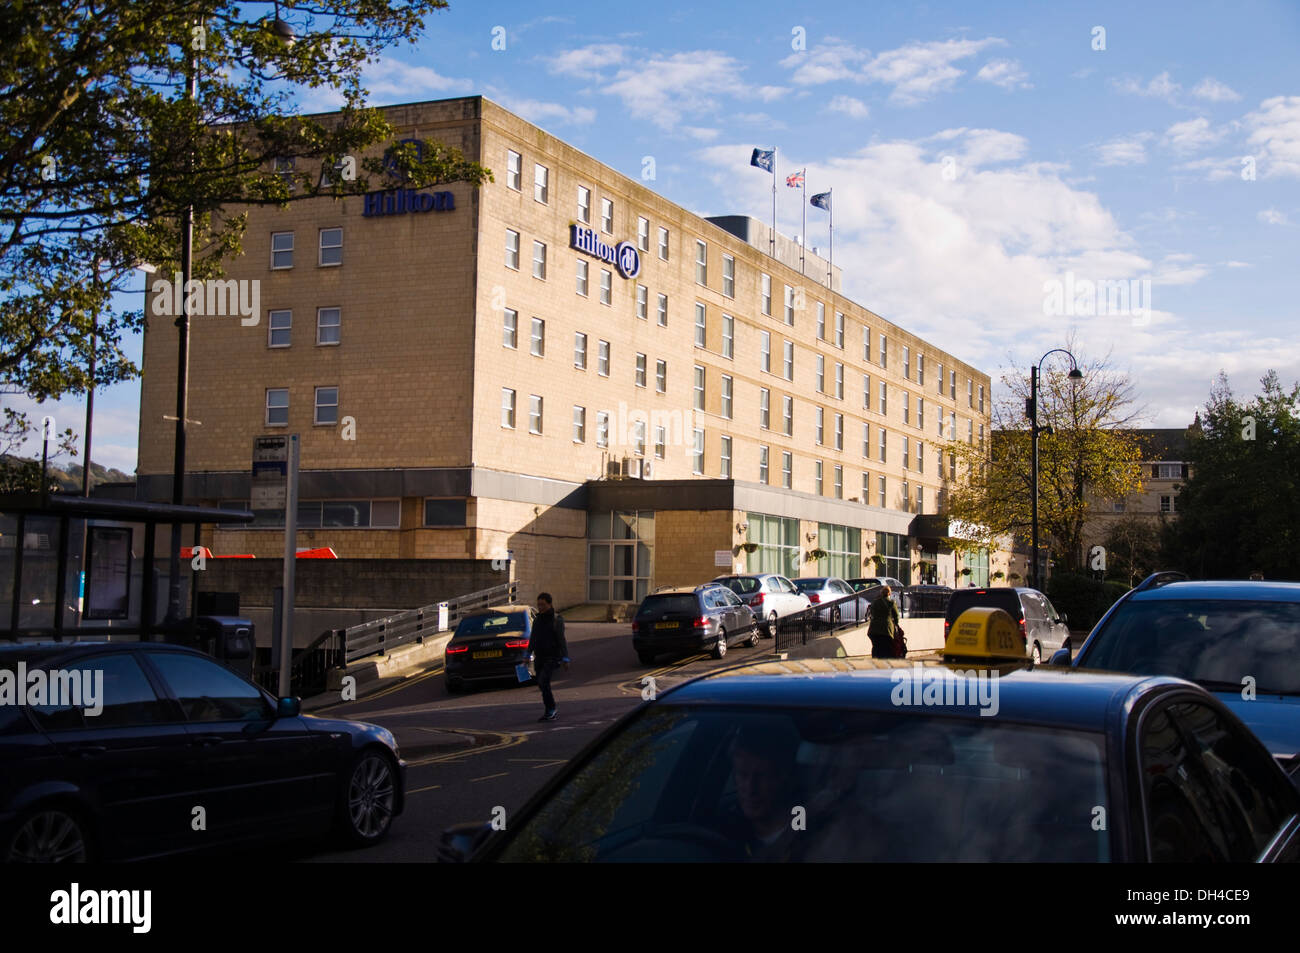 Bed And Breakfast Bath Uk Hilton Hotel Bath Somerset England Uk Stock Photo 62177873 Alamy